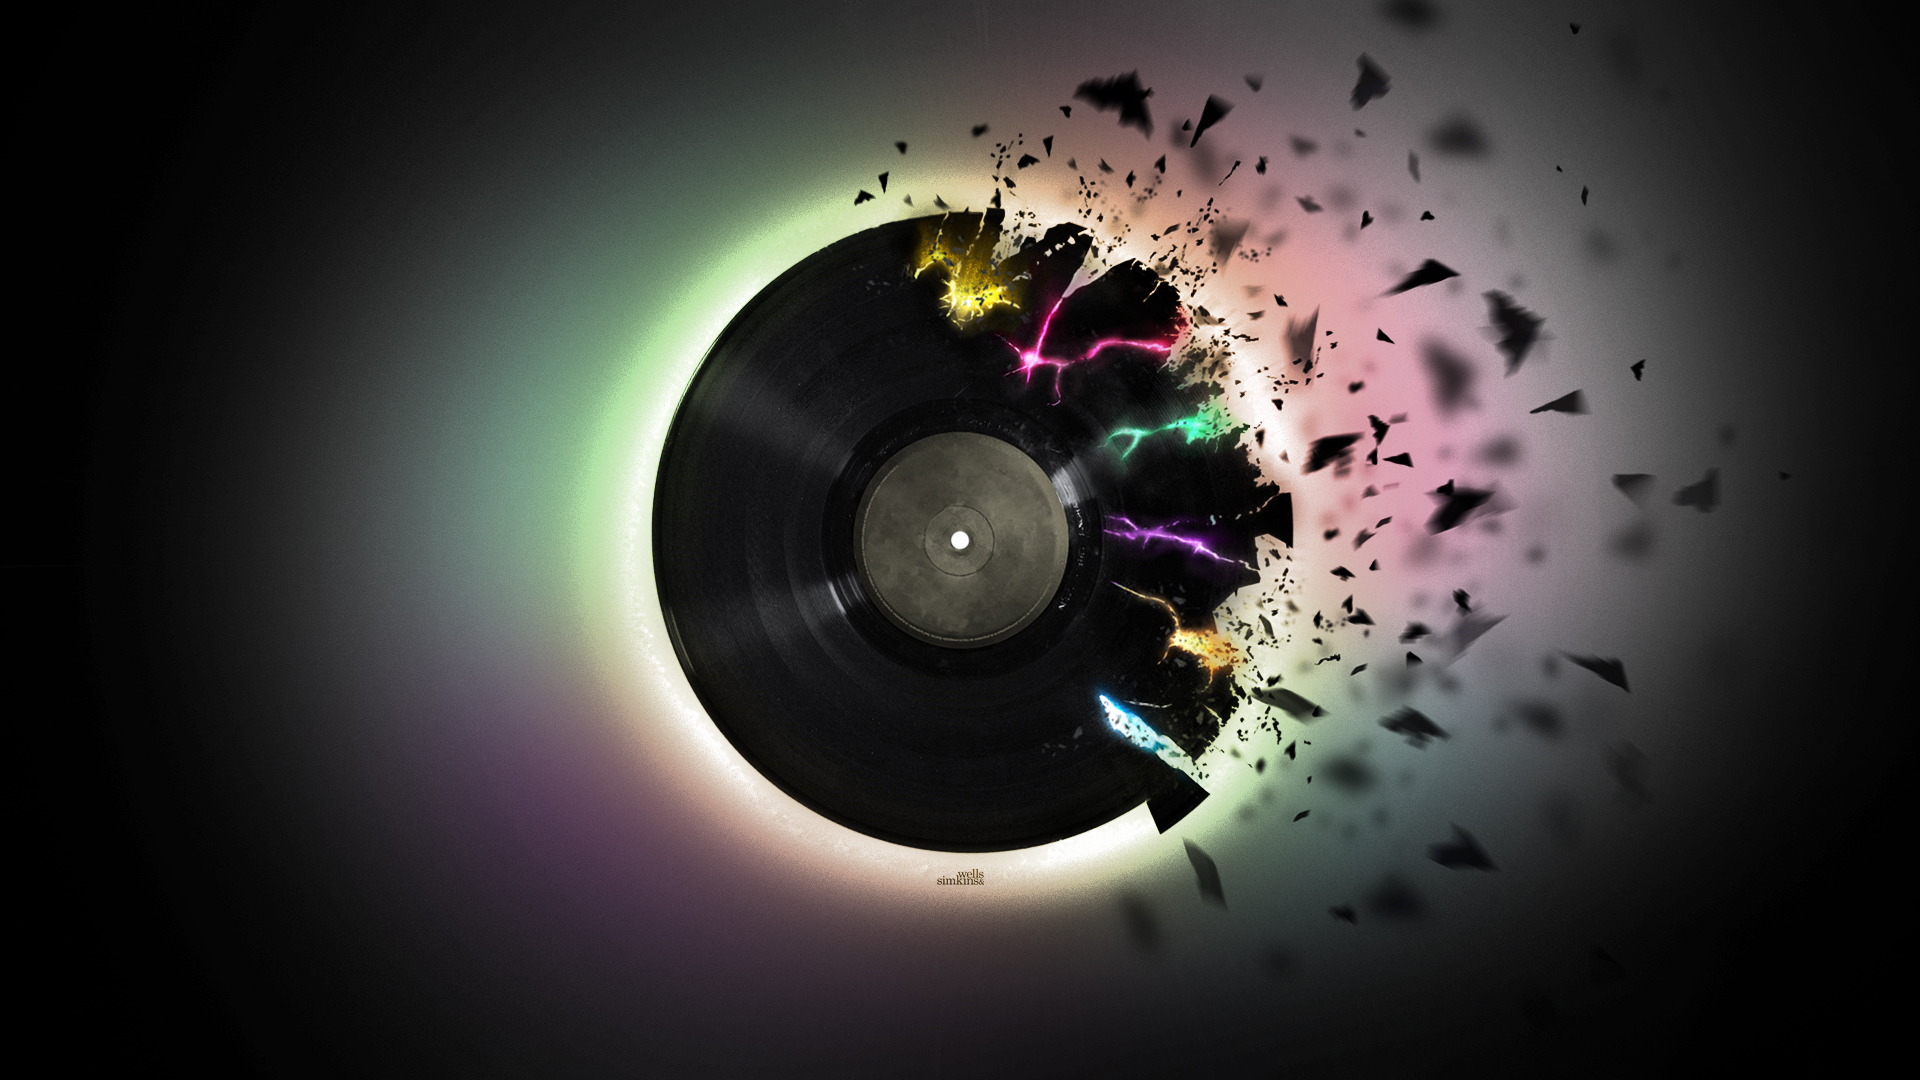 Music Design Record HD Wallpaper Music Design Record Wallpapers for 1920x1080